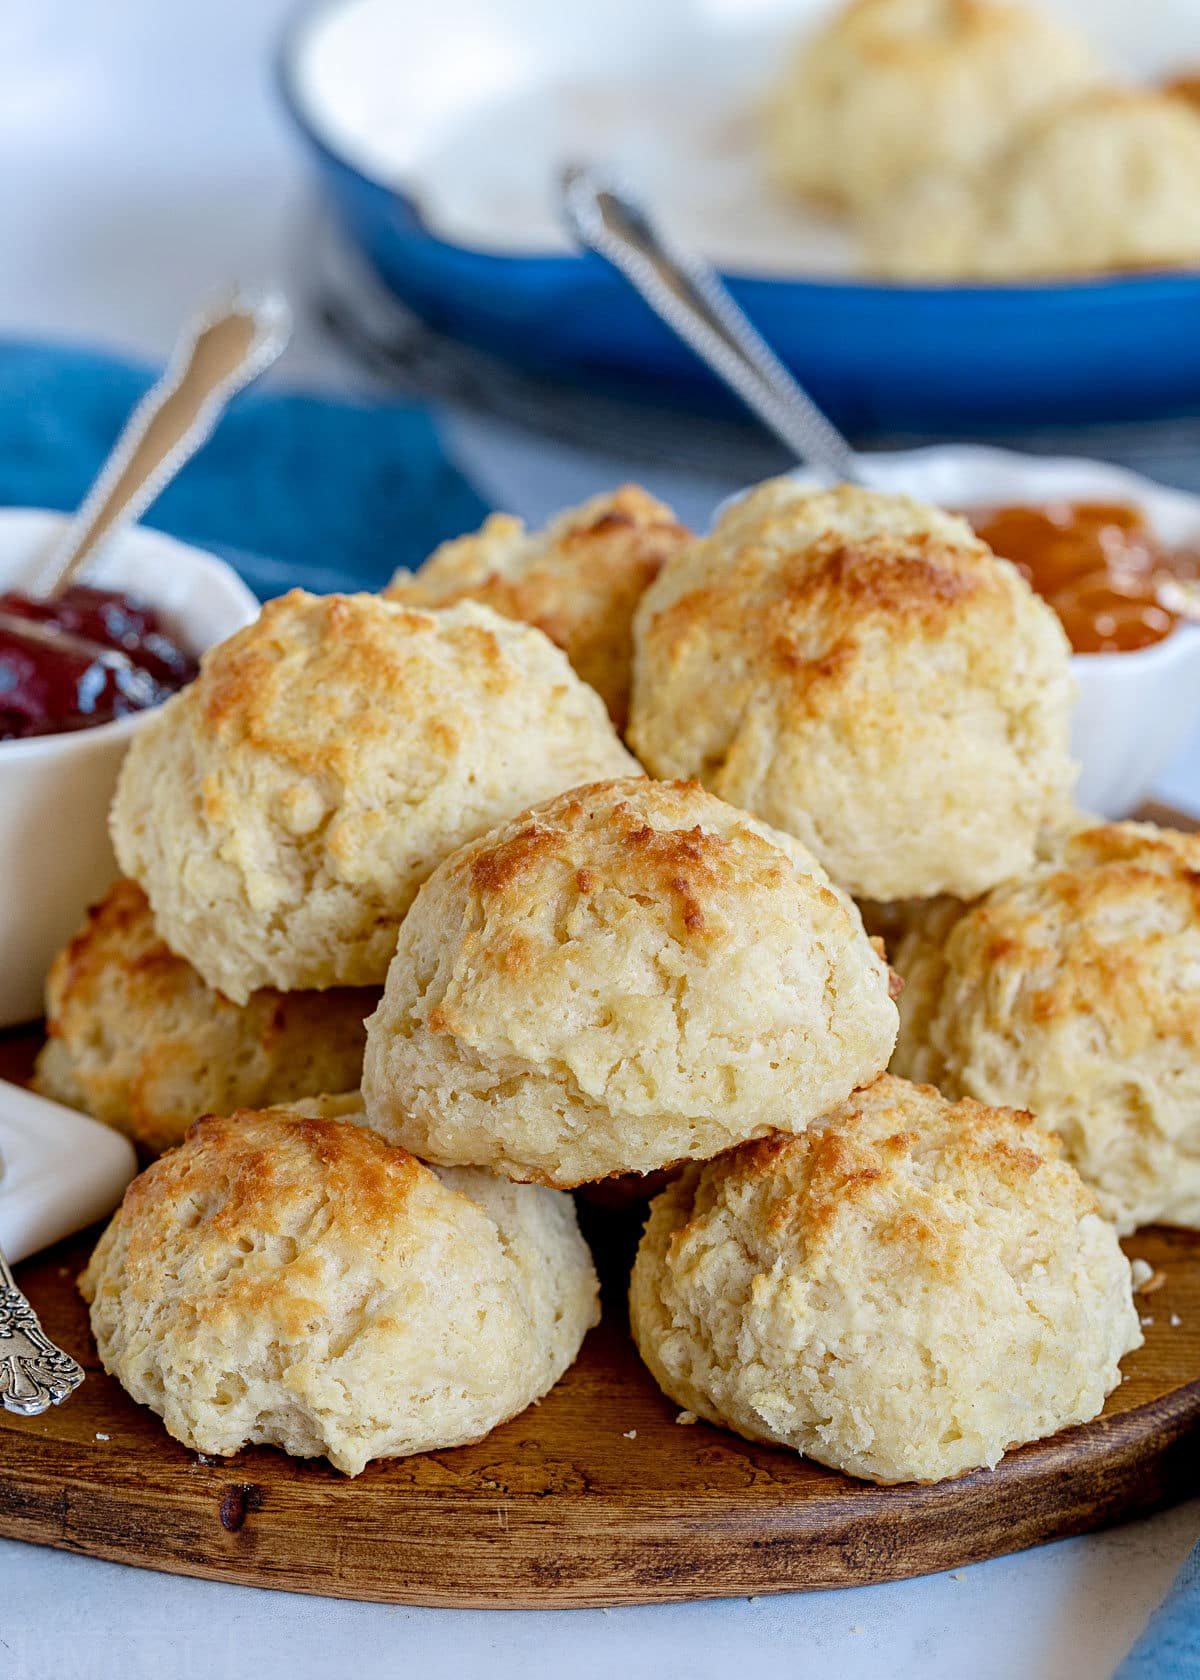 drop biscuits piled high on round wood board